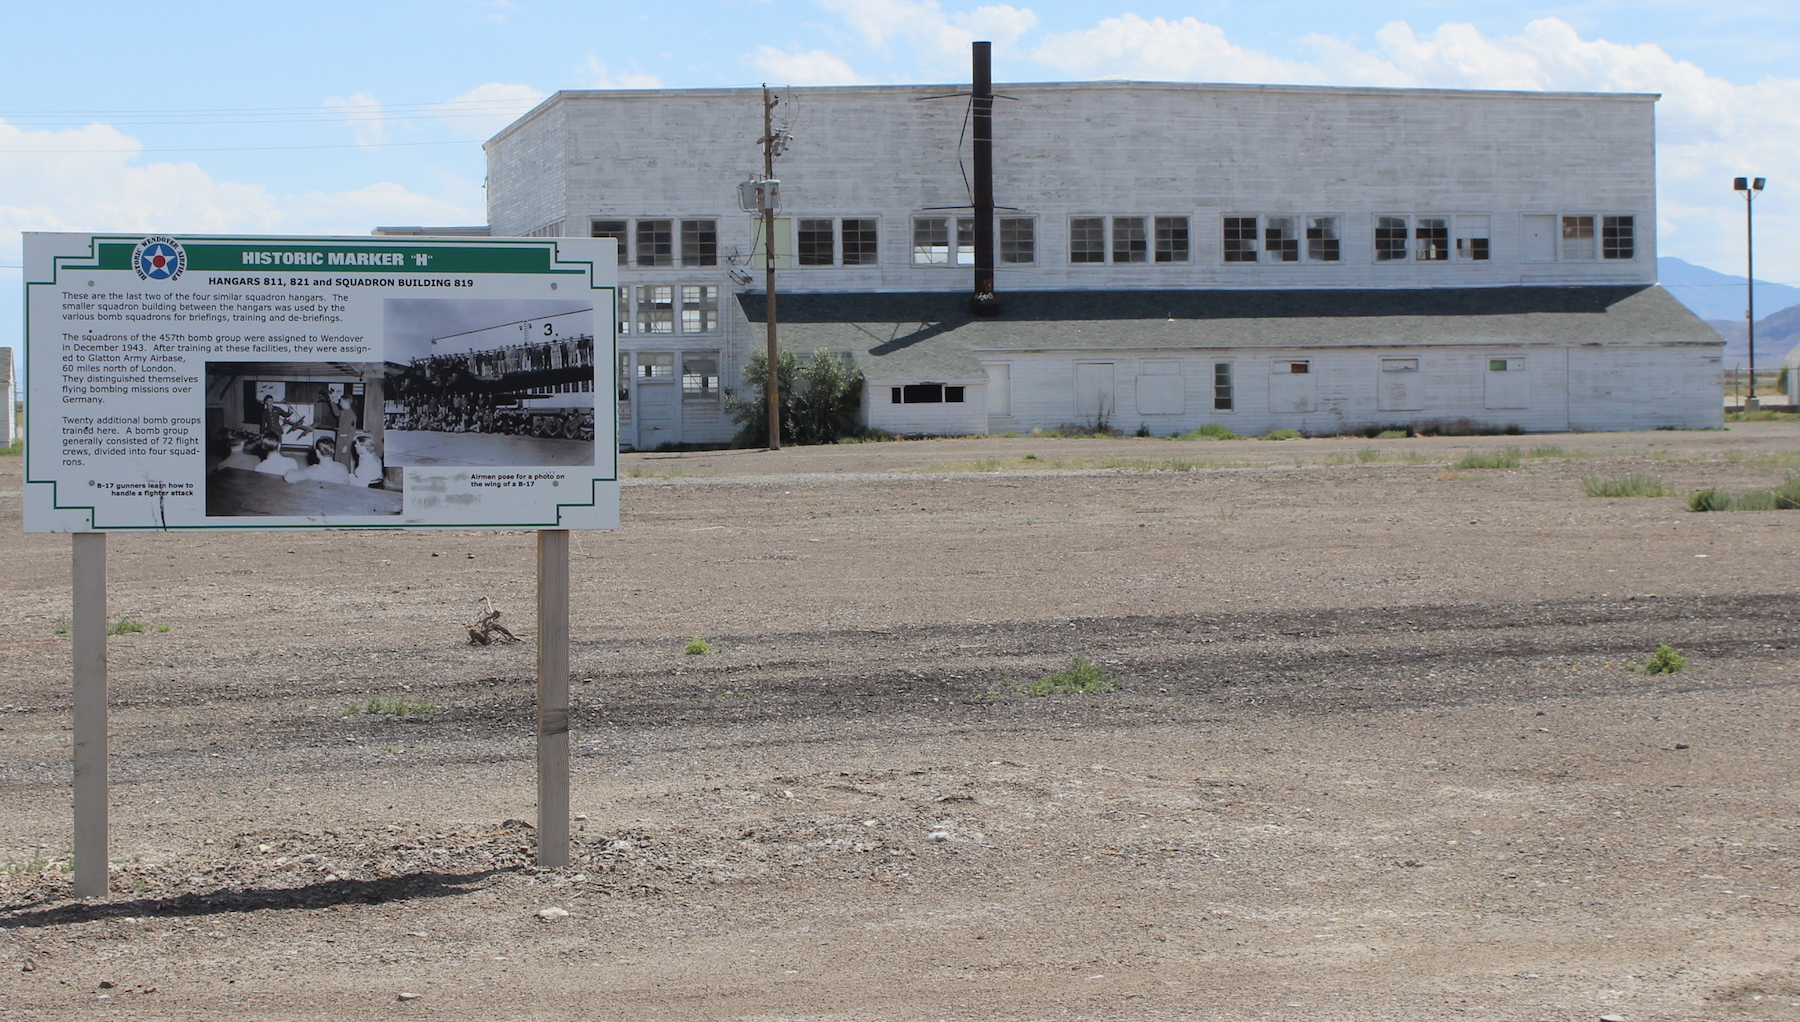 Two squadron hangars out of four still exist at the Wendover Air Field. Steve Ranson / NNG